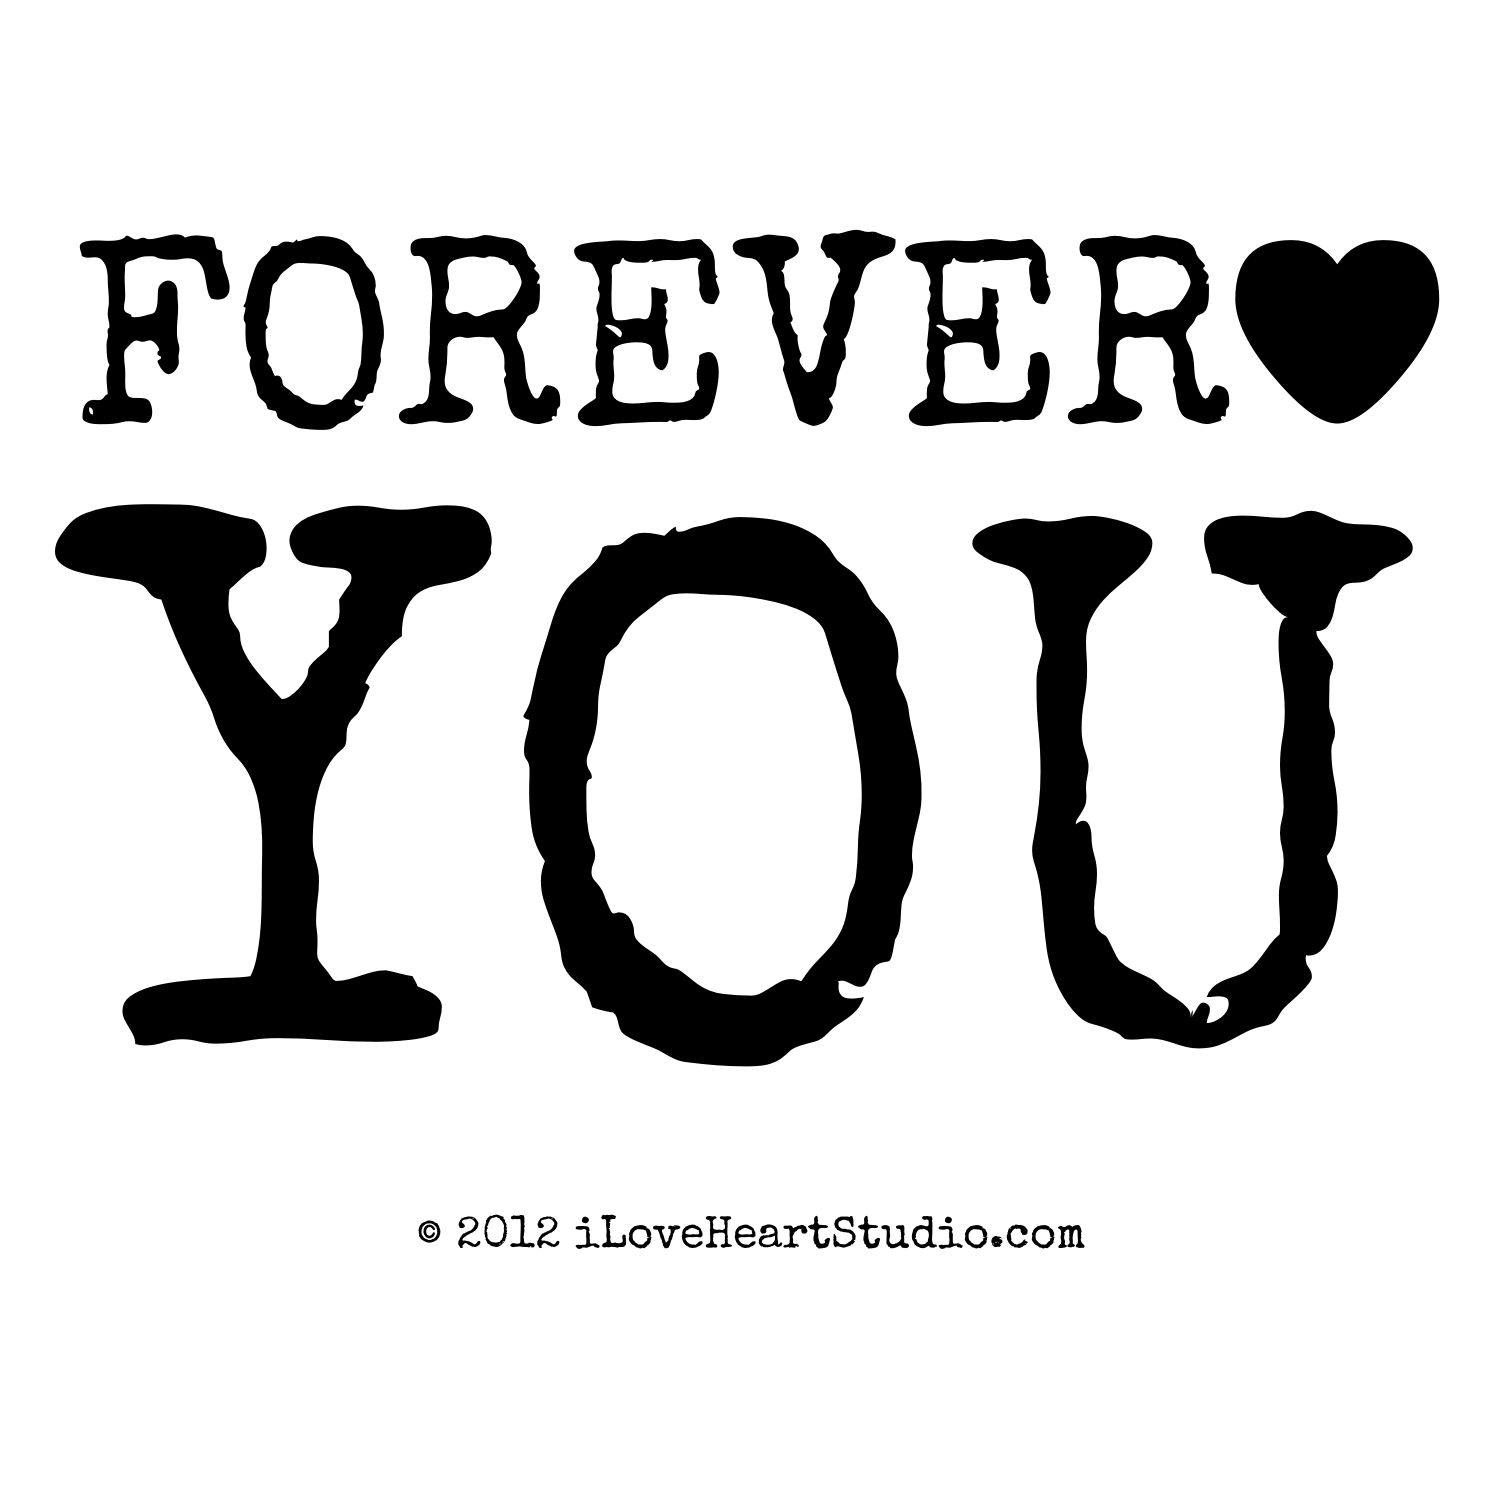 forever [Love heart] you' design on t-shirt, poster, mug and